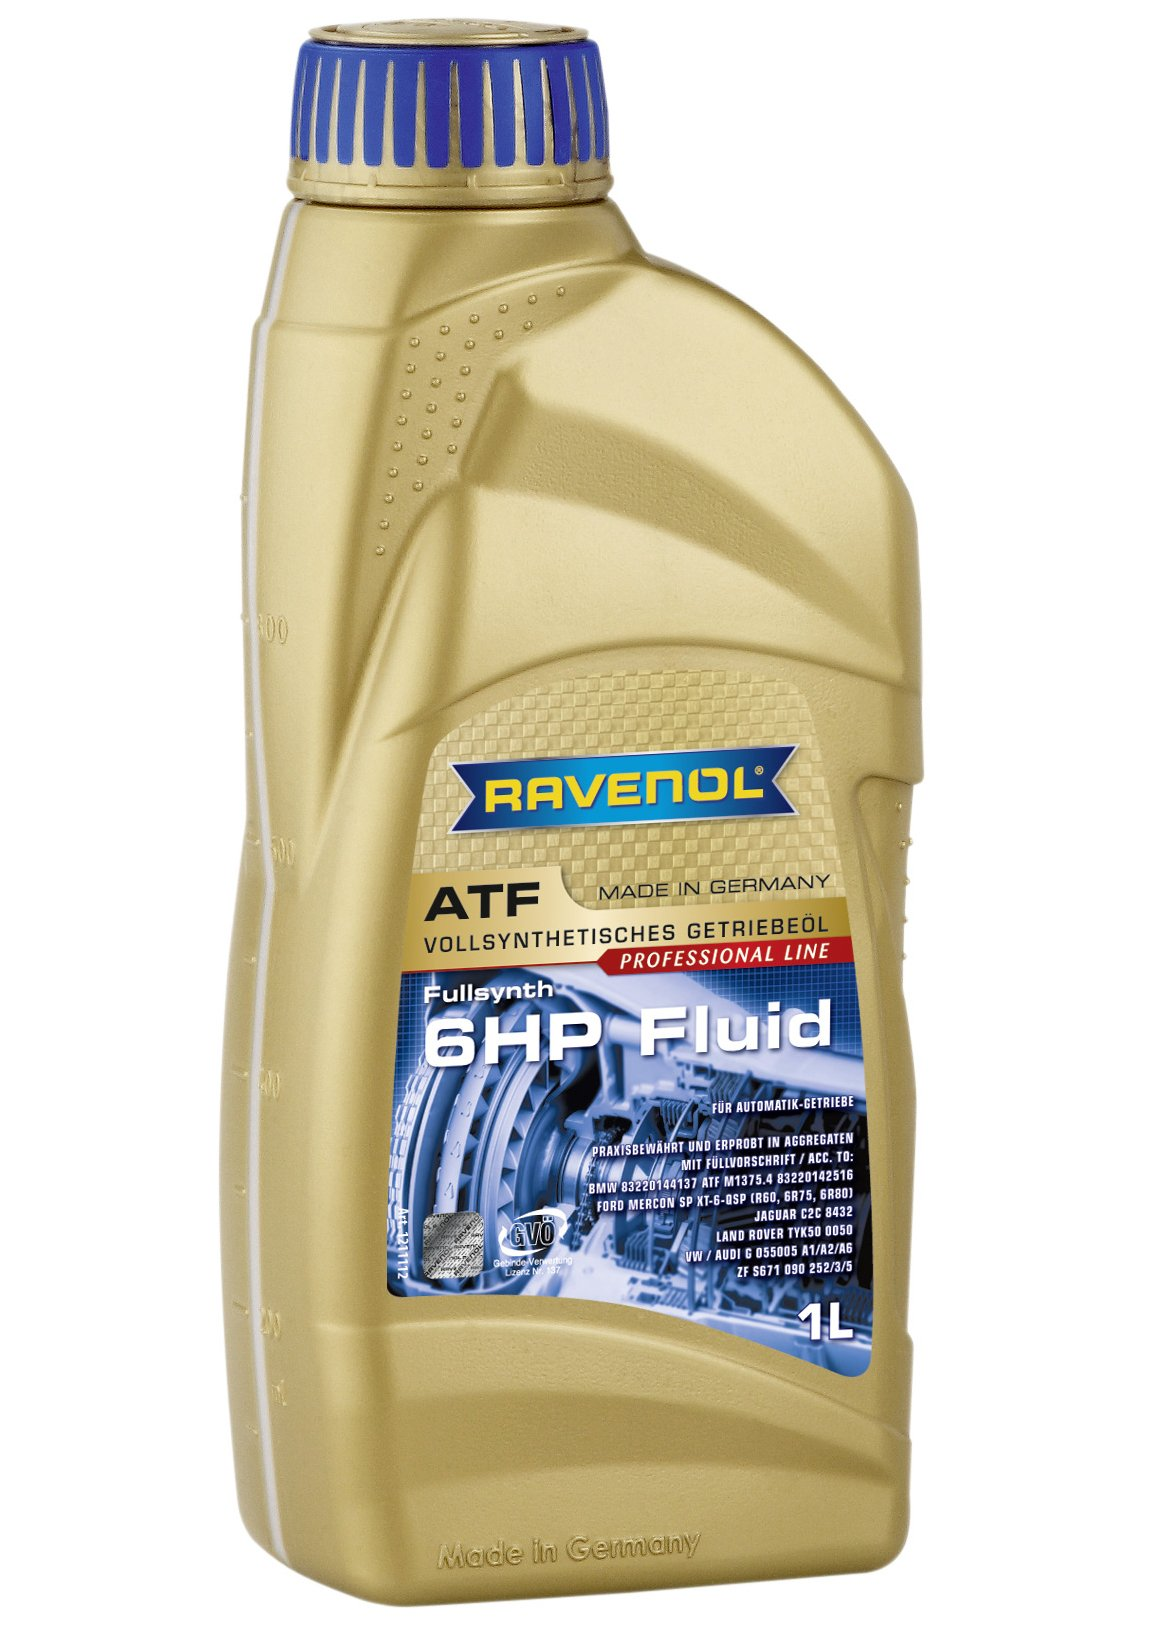 RAVENOL J1D2110 ATF (Automatic Transmission Fluid) - 6HP Fluid for ZF 6HP Transmissions (1 Liter)